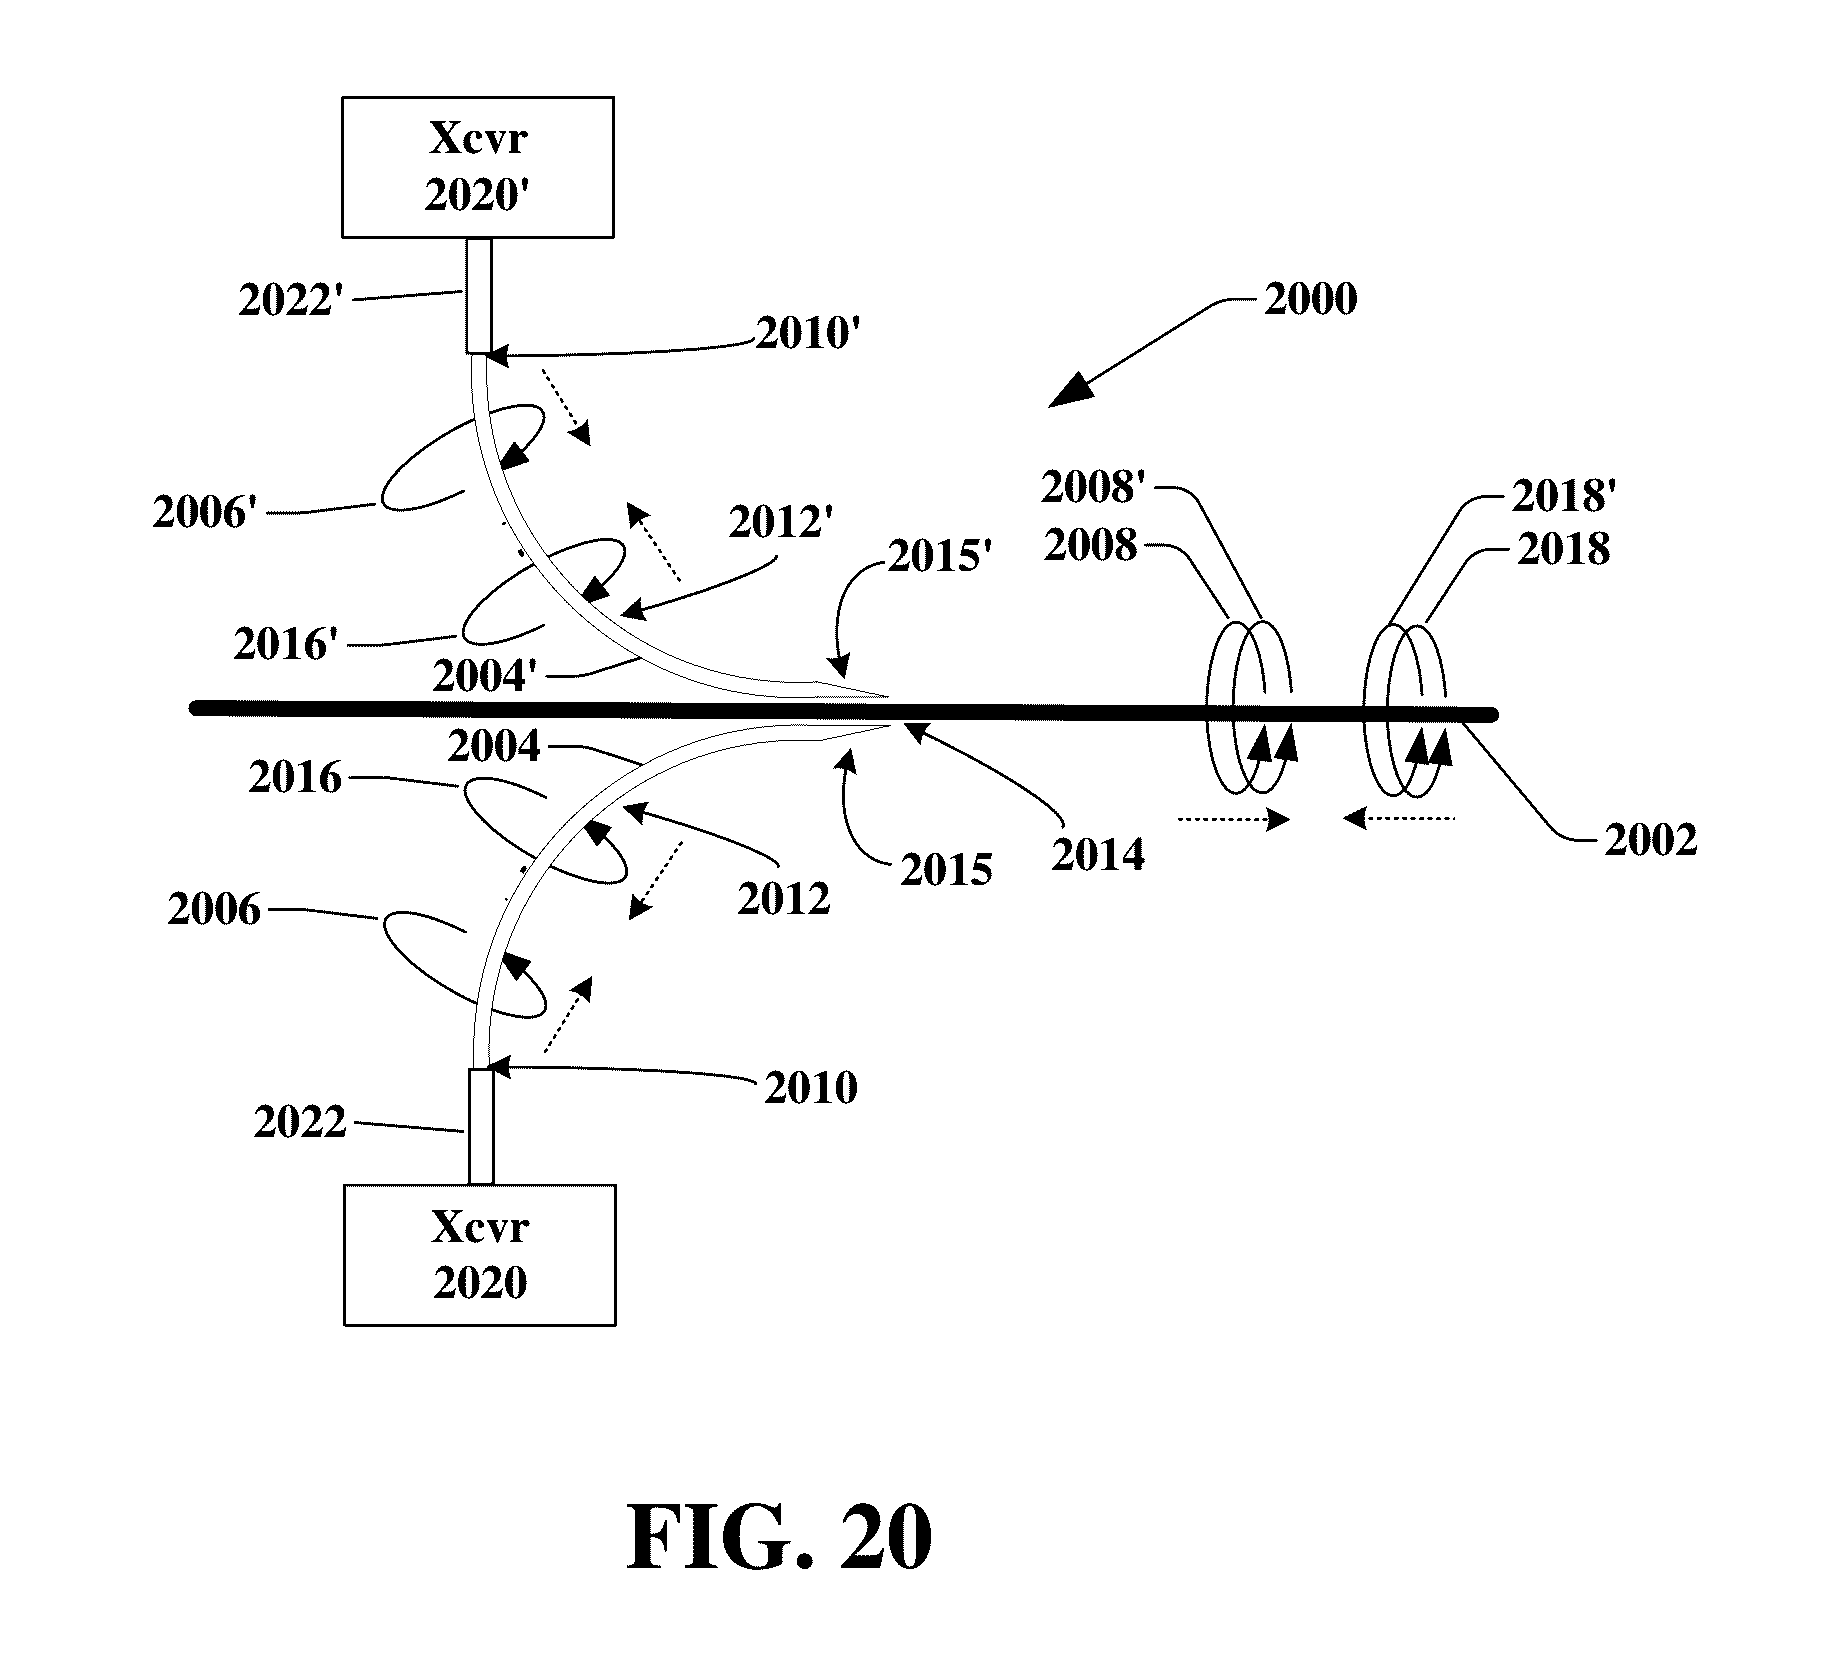 Us9531427b2 Transmission Device With Mode Division Multiplexing Generator Breaker Interlock Kits Moreover Circuit And Methods For Use Therewith Google Patents